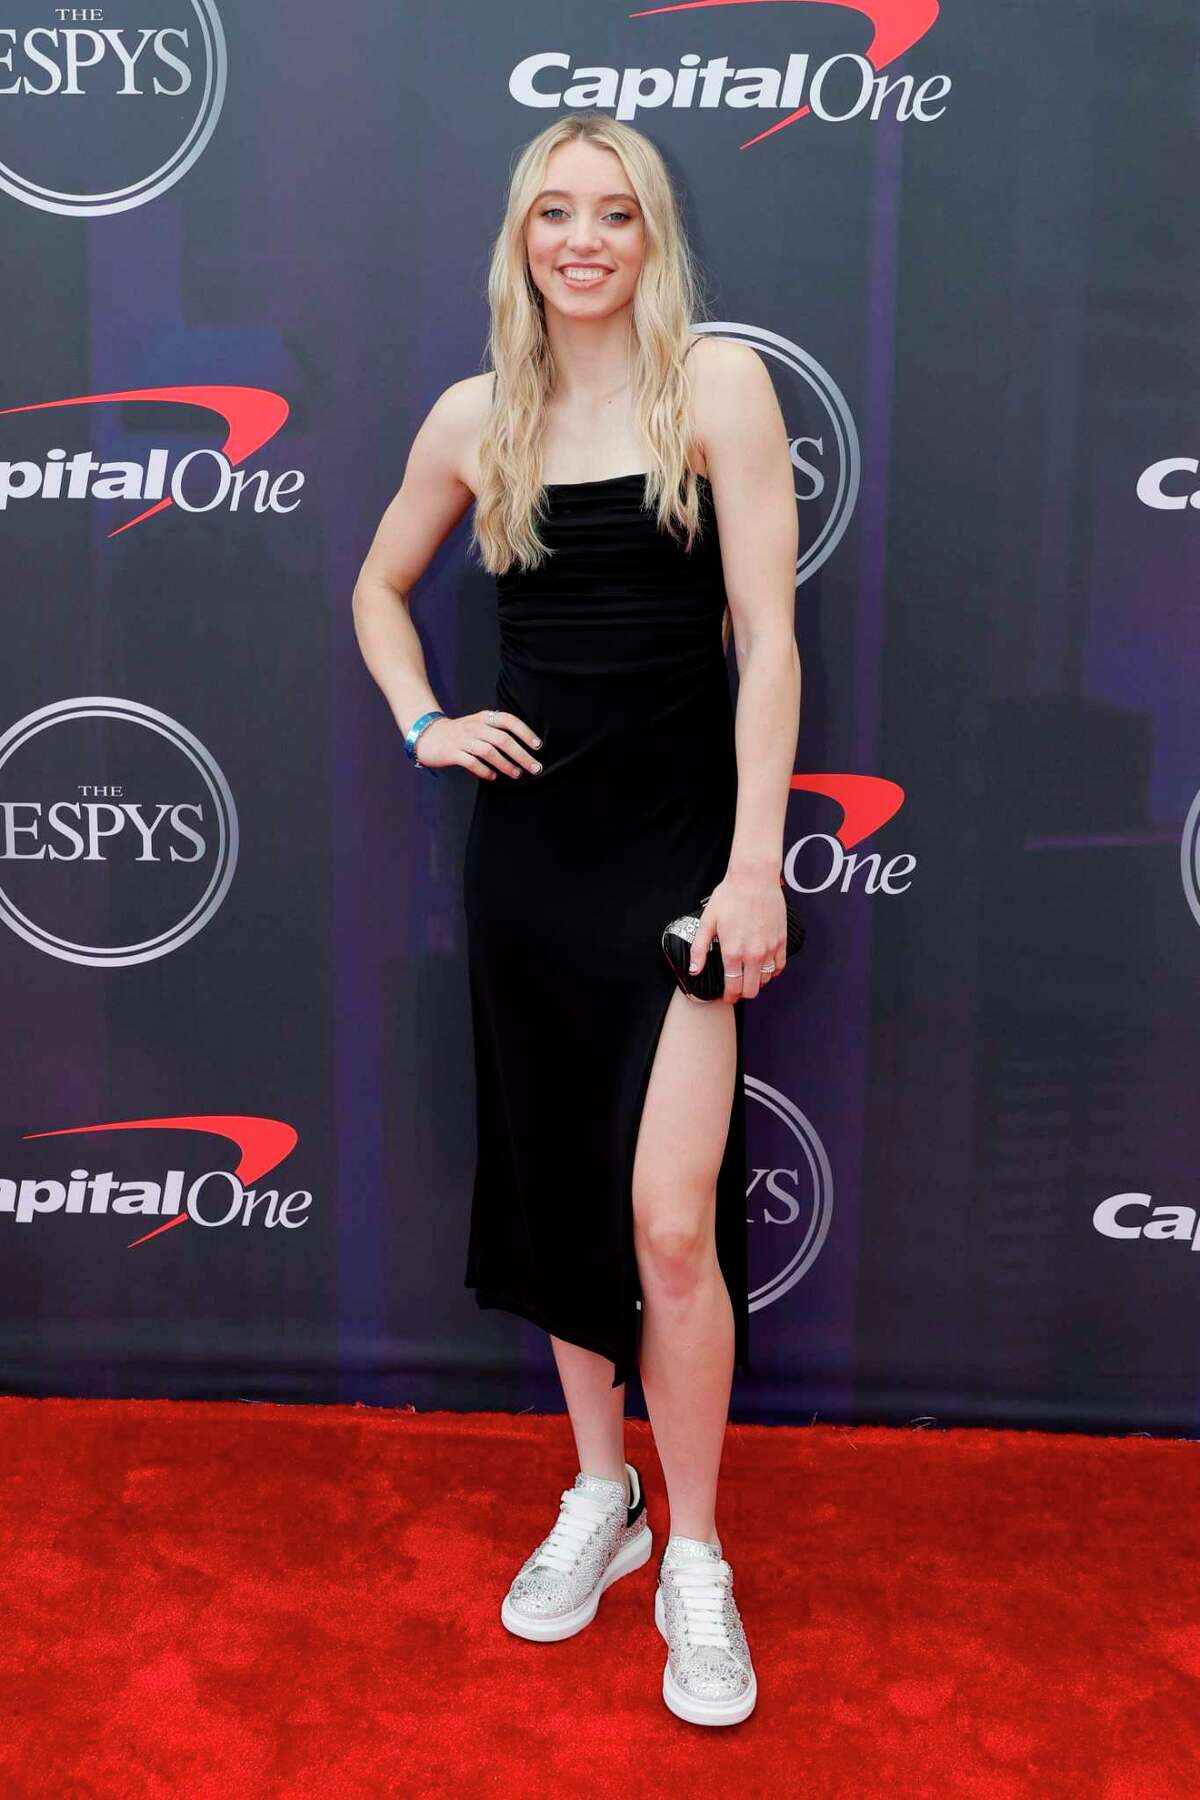 NEW YORK, NEW YORK - JULY 10: Paige Bueckers attends the 2021 ESPY Awards at Rooftop At Pier 17 on July 10, 2021 in New York City. (Photo by Michael Loccisano/Getty Images)